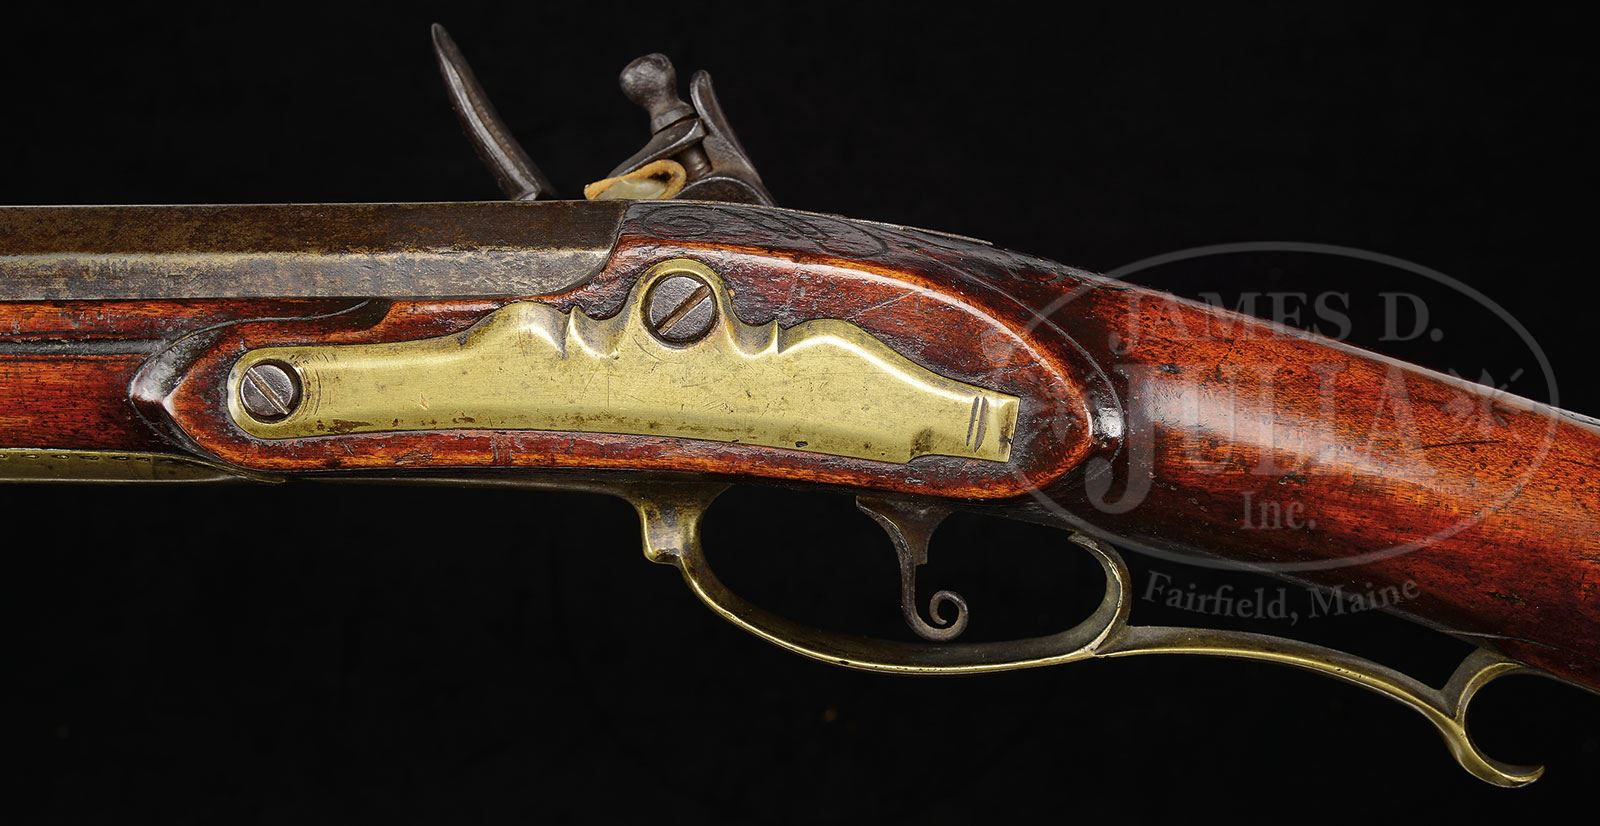 EXTREMELY FINE INCISED CARVED BUCK'S COUNTY RIFLE ATTRIBUTED